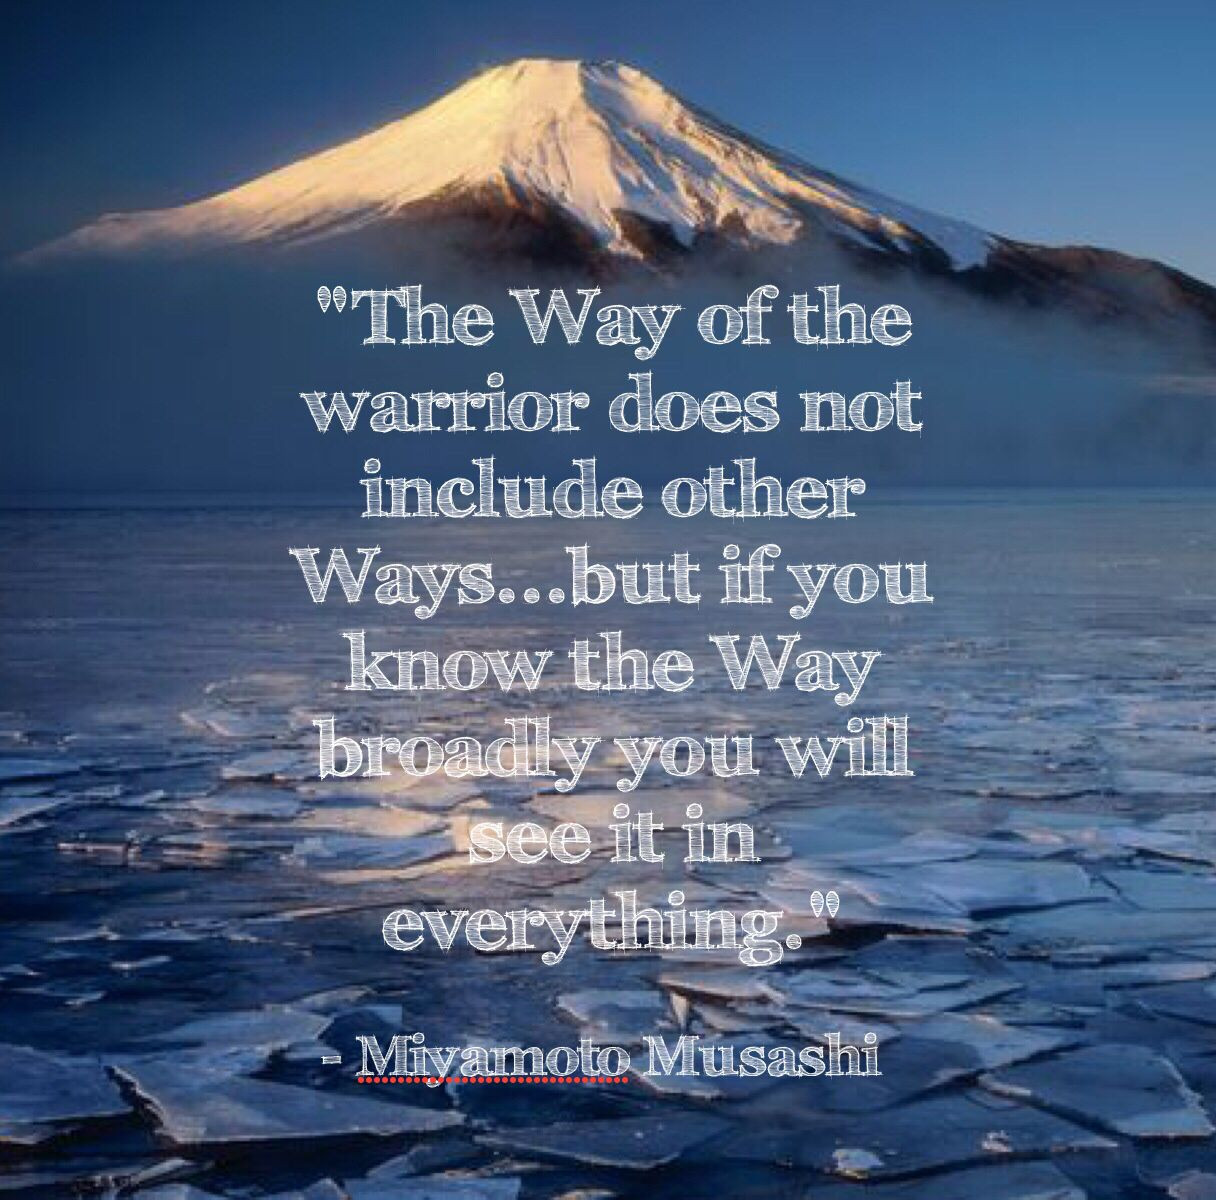 Words of wisdom by the last great samurai miyamoto musashi inspirierend pinterest - Miyamoto musashi zitate ...